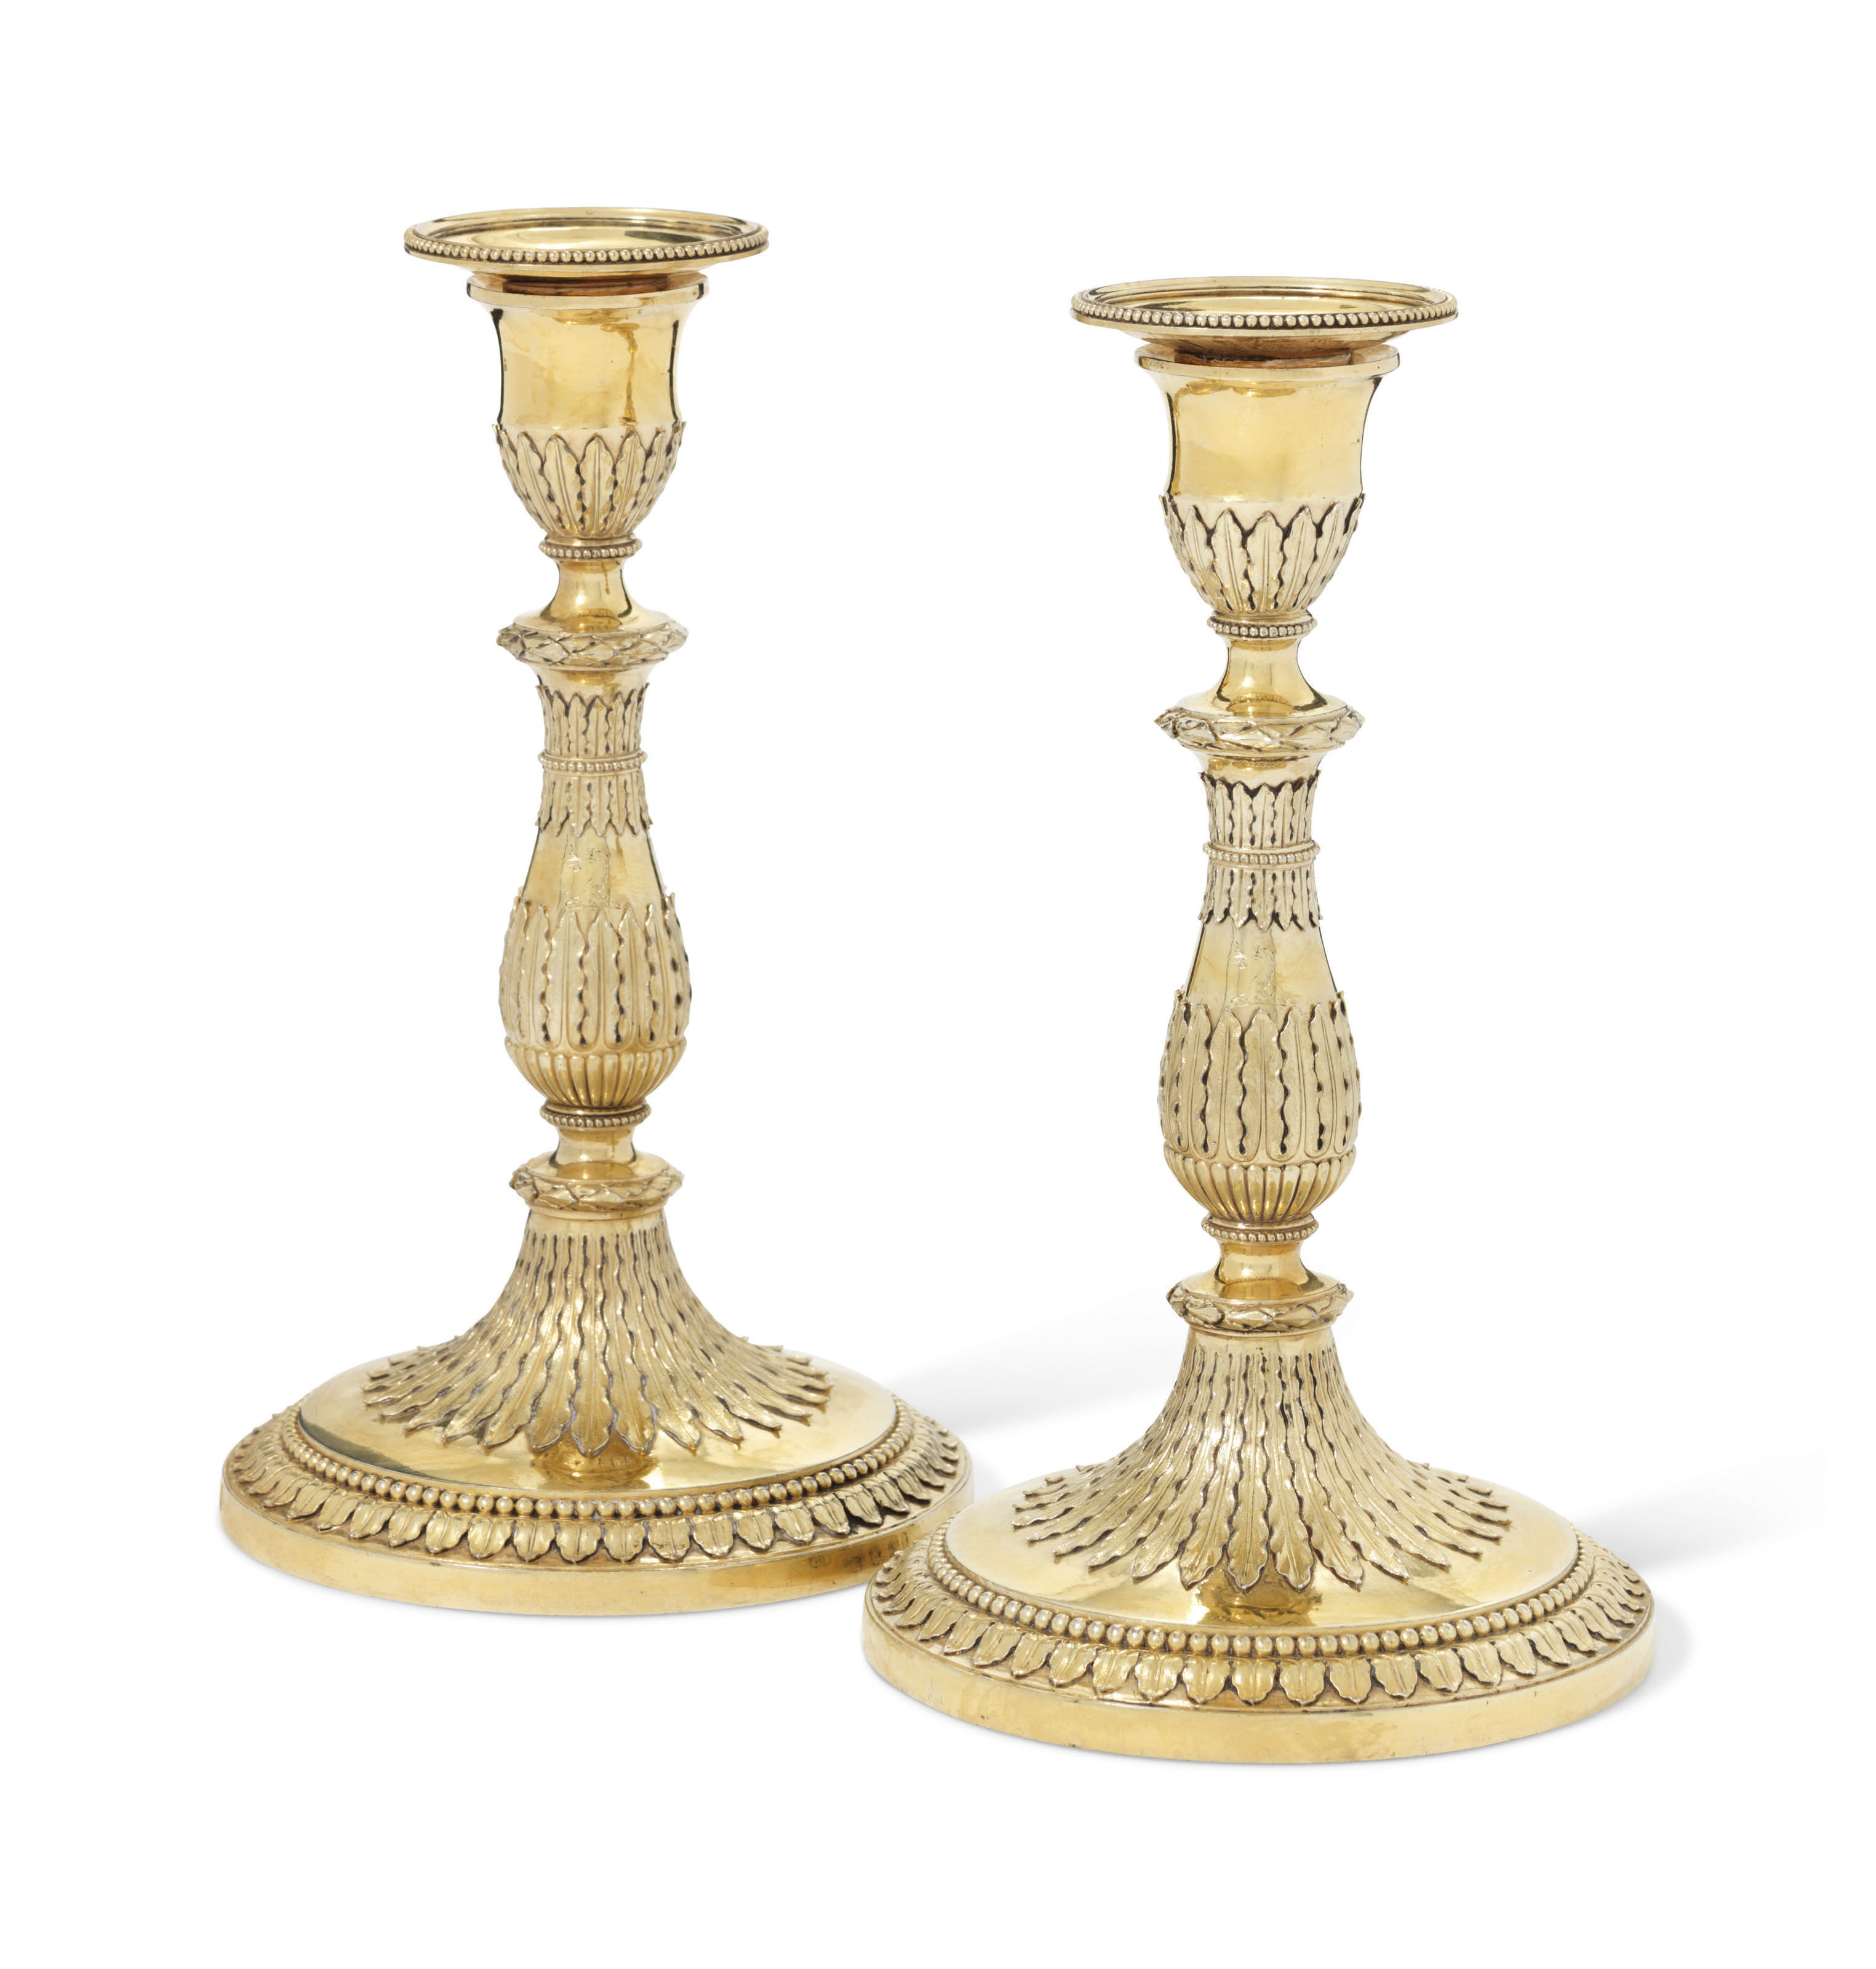 A PAIR OF GEORGE III SILVER-GILT CANDLESTICKS